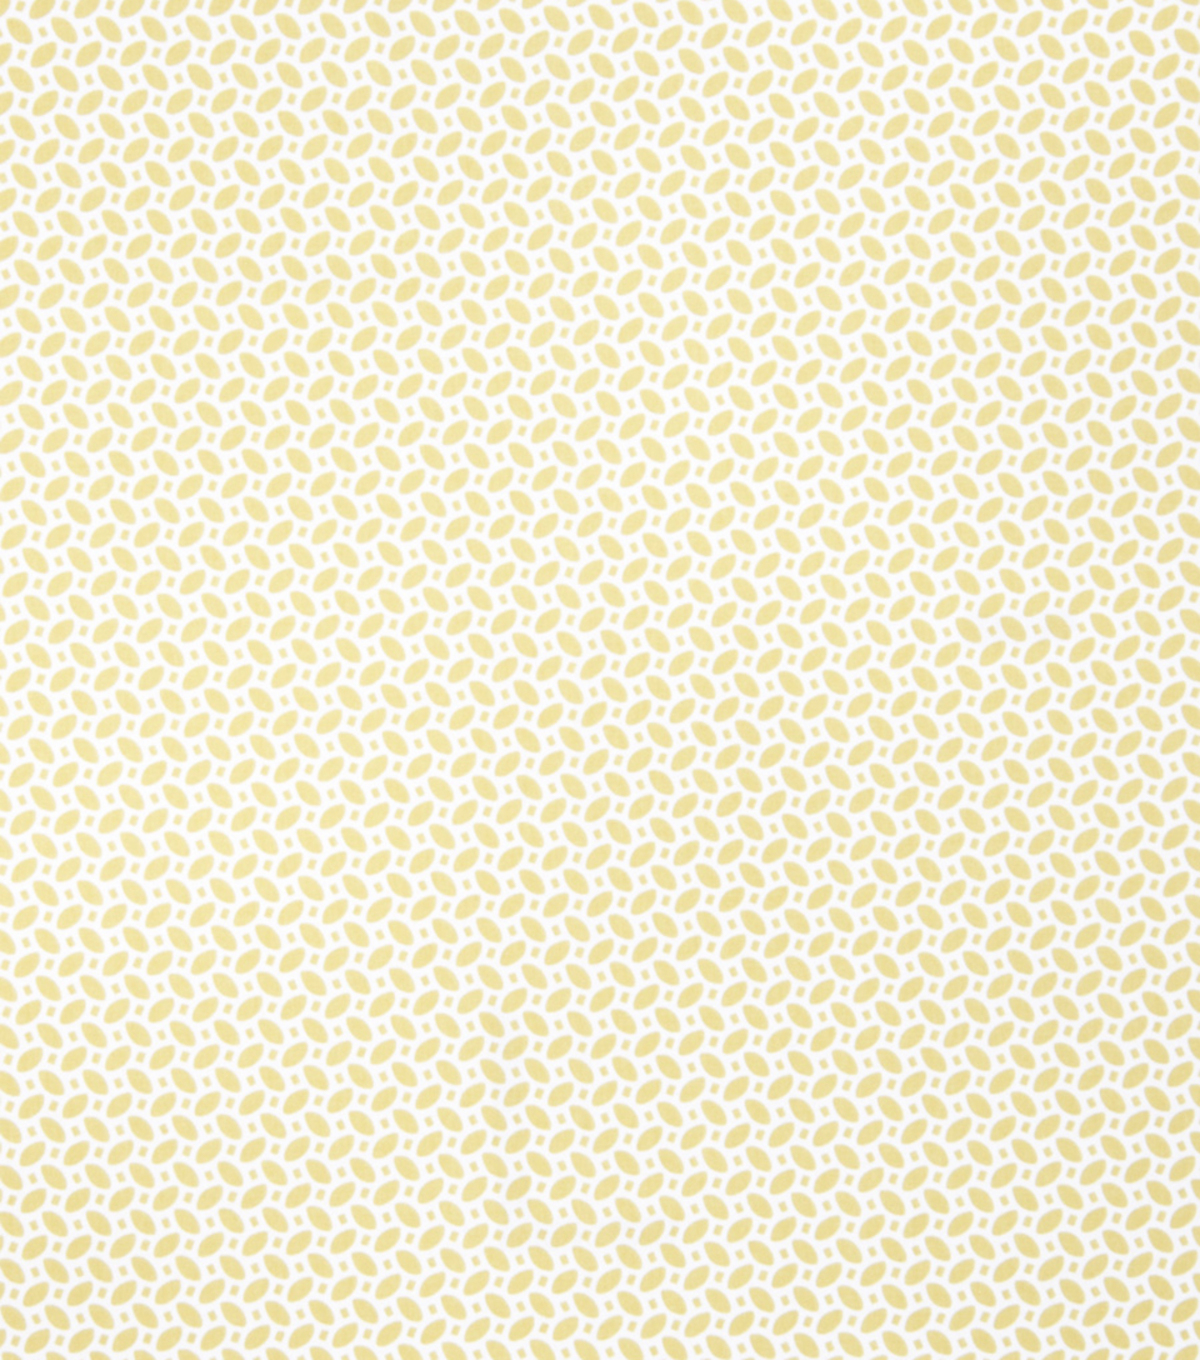 Home Decor 8\u0022x8\u0022 Fabric Swatch-Upholstery Fabric Eaton Square Giggles Citron